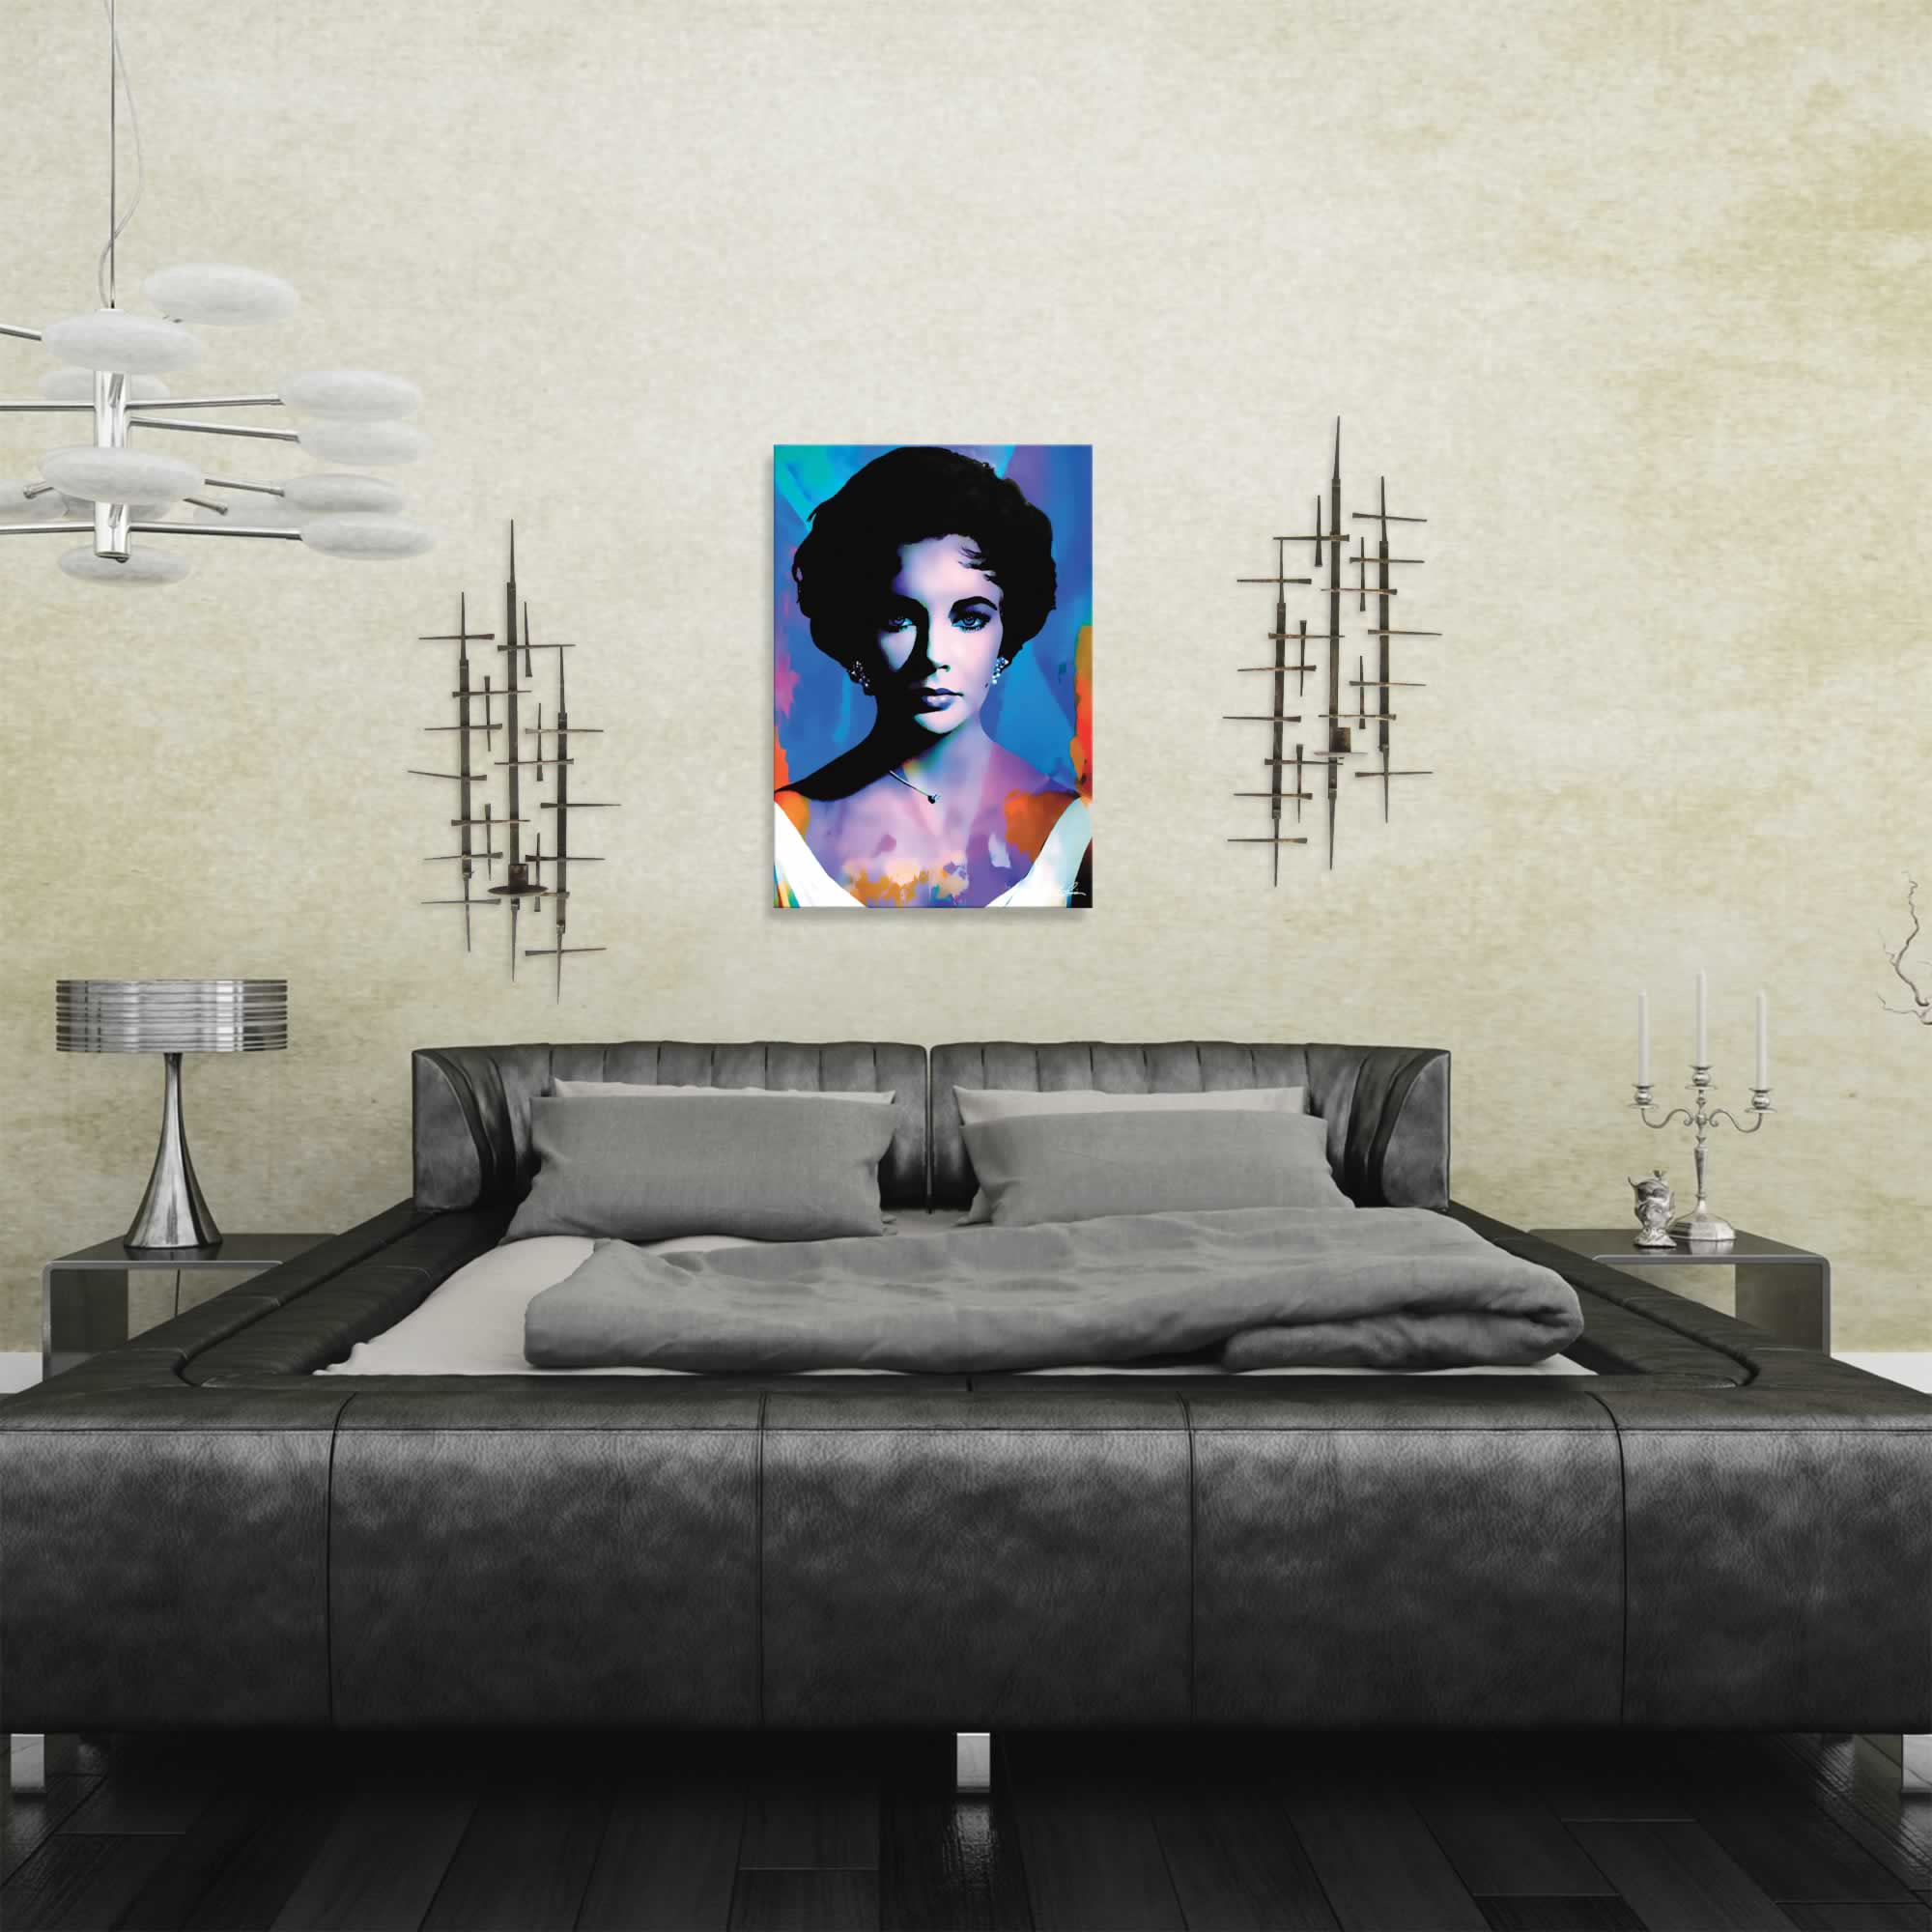 Mark Lewis 'Elizabeth Taylor The Color of Passion' Limited Edition Pop Art Print on Metal or Acrylic - Alternate View 1